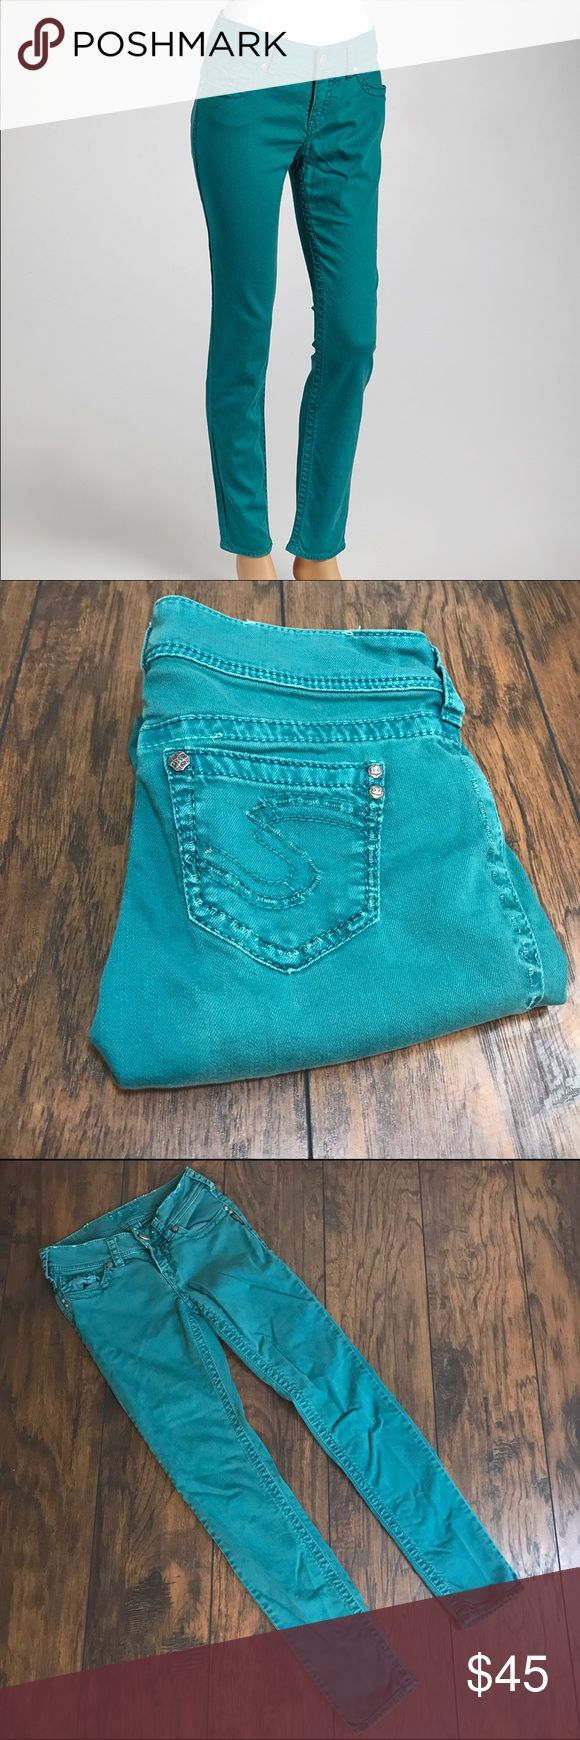 💕$22💕Teal skinny jeans Suki skinny jeans in teal. 31 inch inseam Silver Jeans Pants Ankle & Cropped